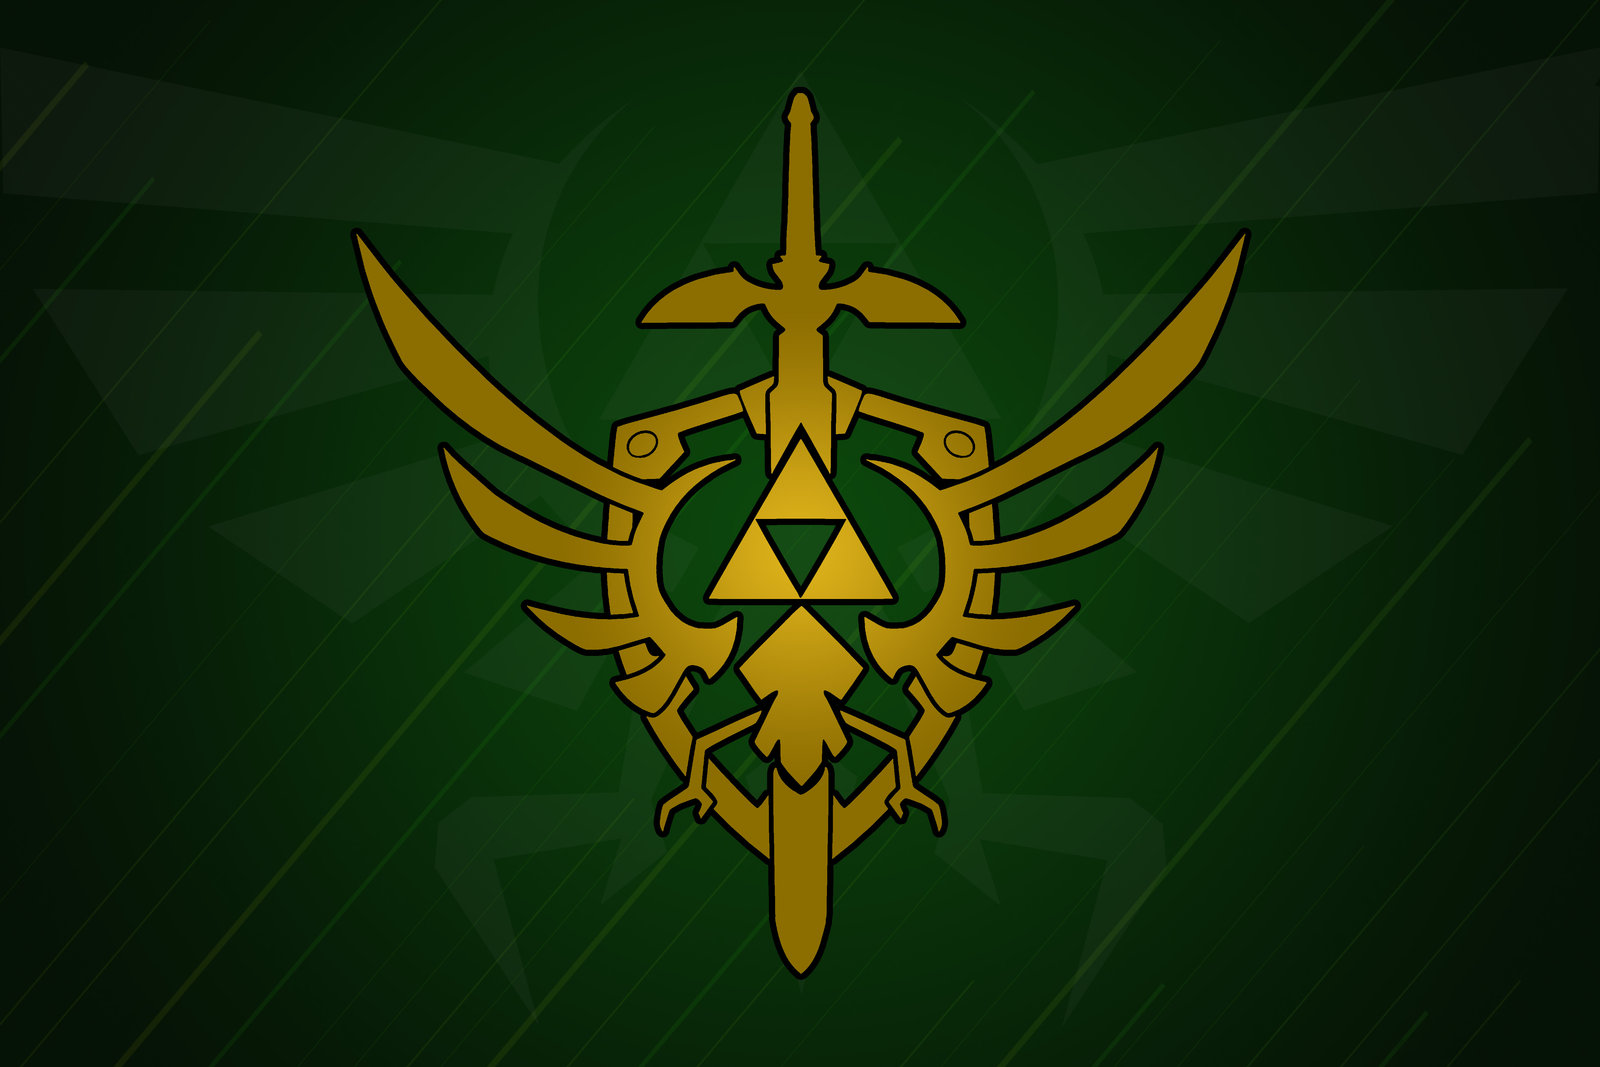 Zelda-High-Definition-sNfvJ-wallpaper-wp38012393